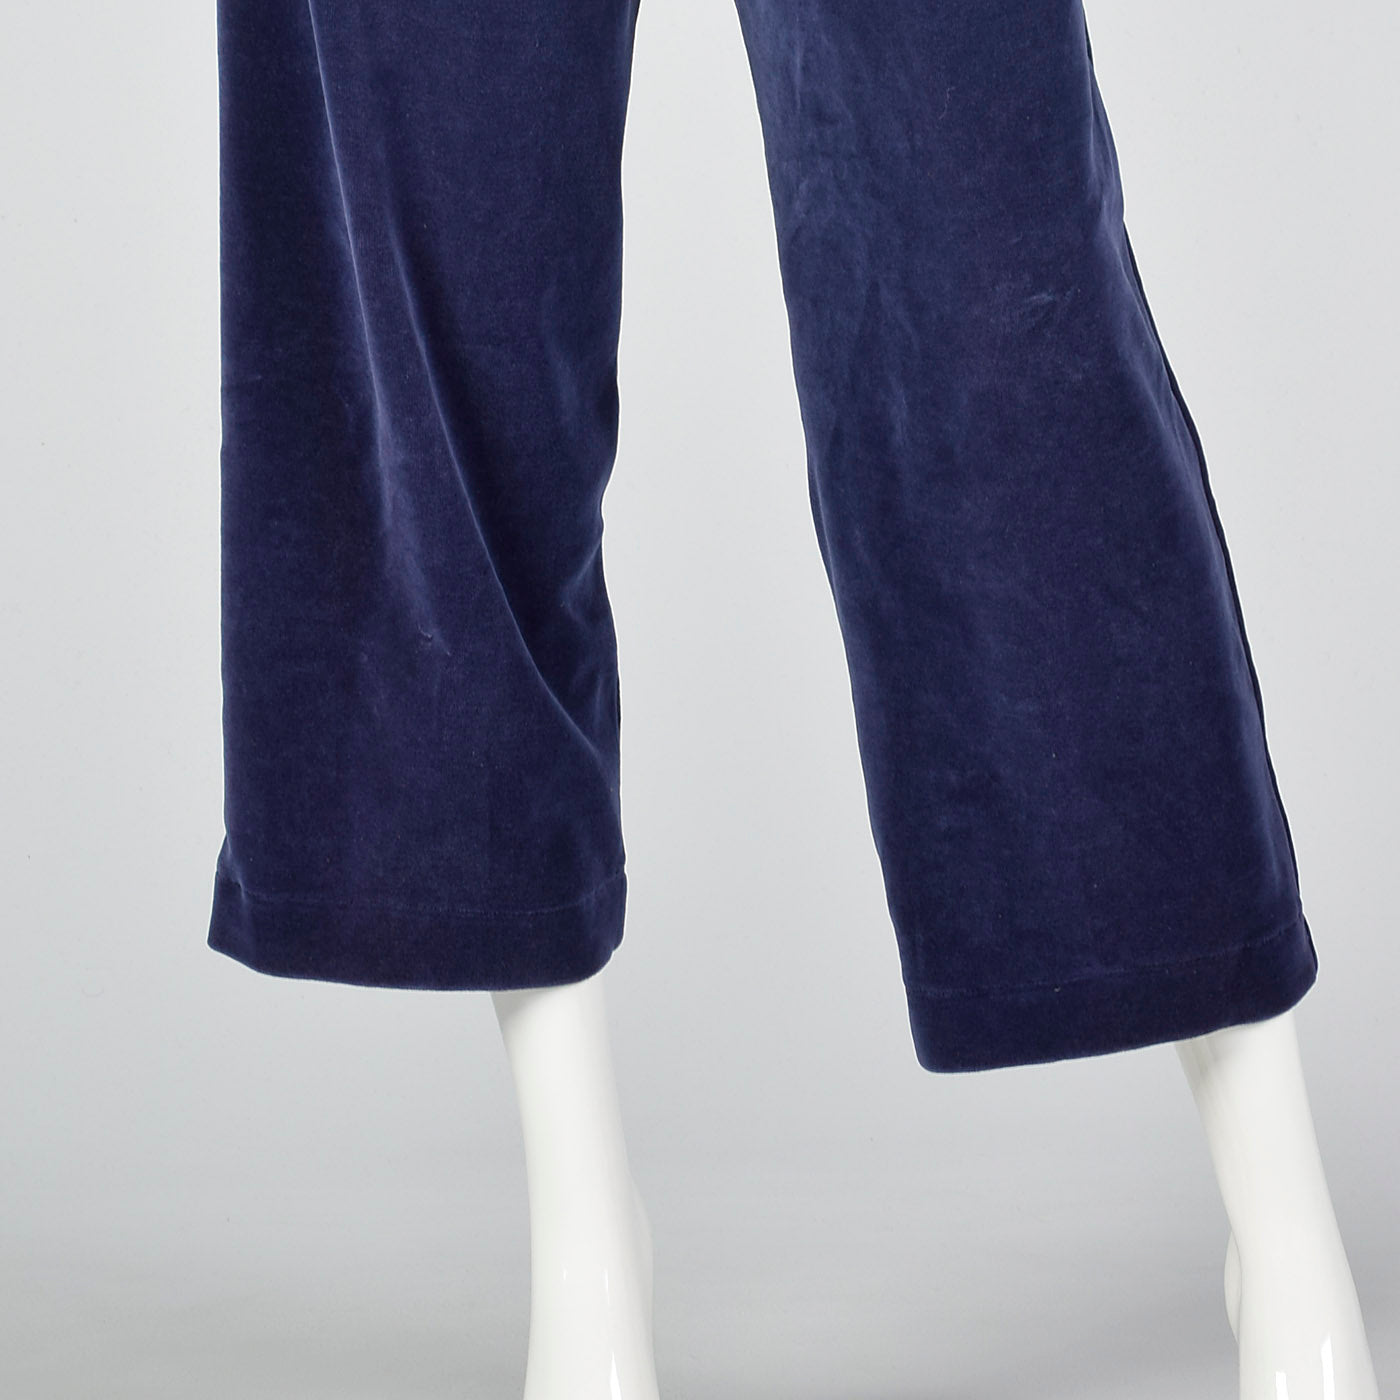 1980s Sonia Rykiel Velour Knit Set in Blue